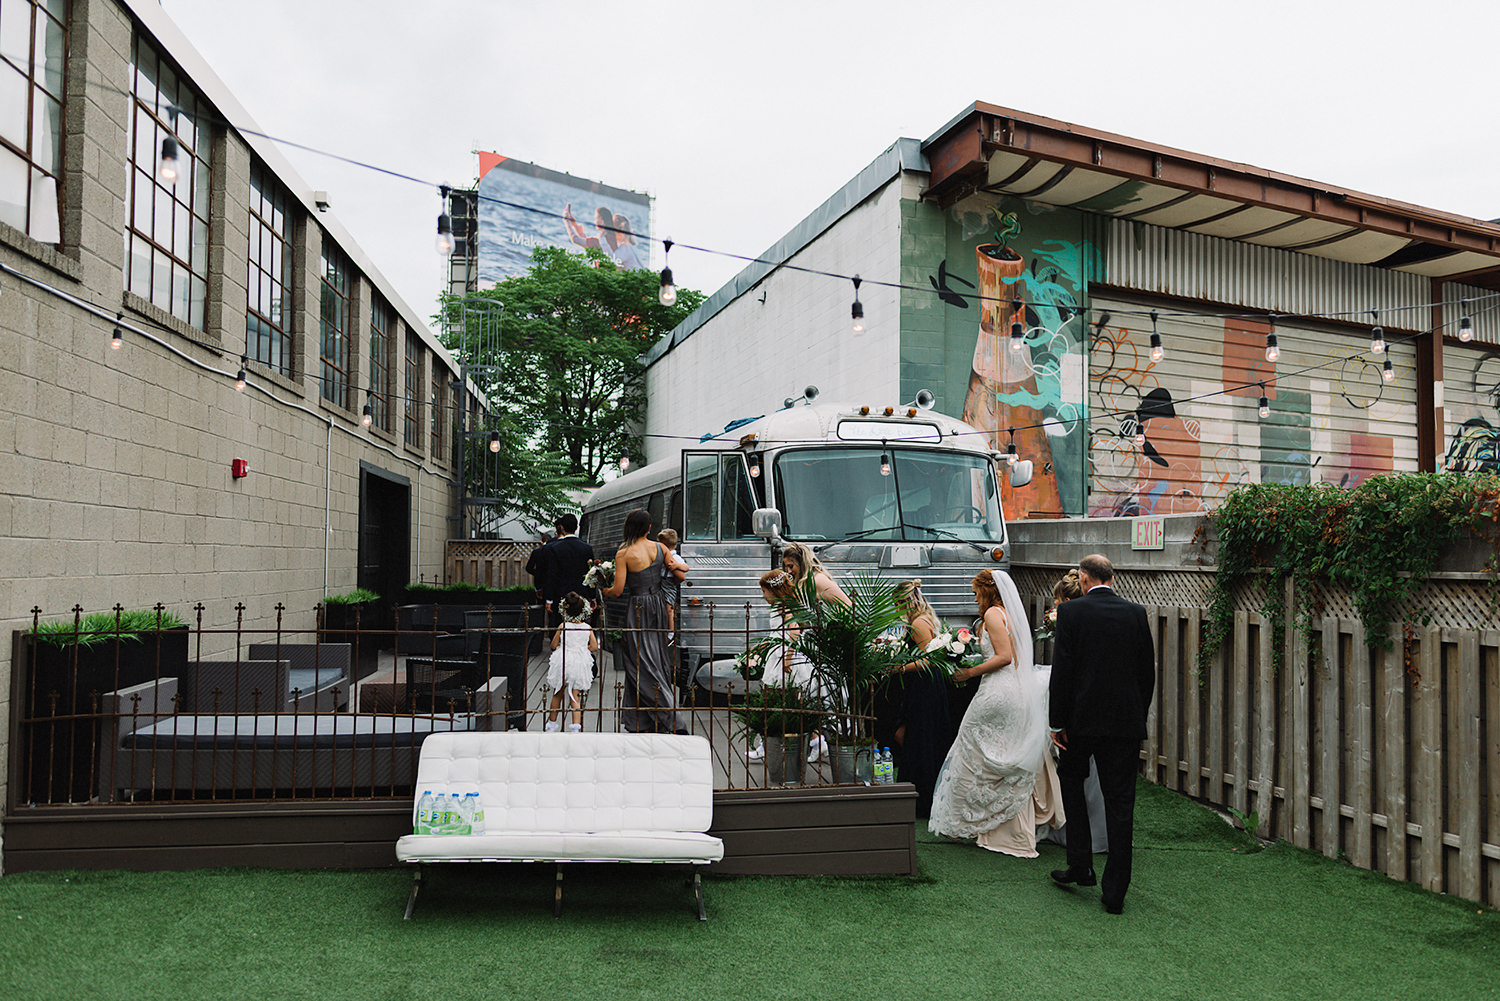 downtown-toronto-wedding-photographer-ryanne-hollies-photography-airship37-distillery-district-wedding-day-modern-minimalist-venues-in-toronto-cool-trendy-hipster-bride-getting-ready-candid-documentary-florals-walking-down-the-aisle.jpg